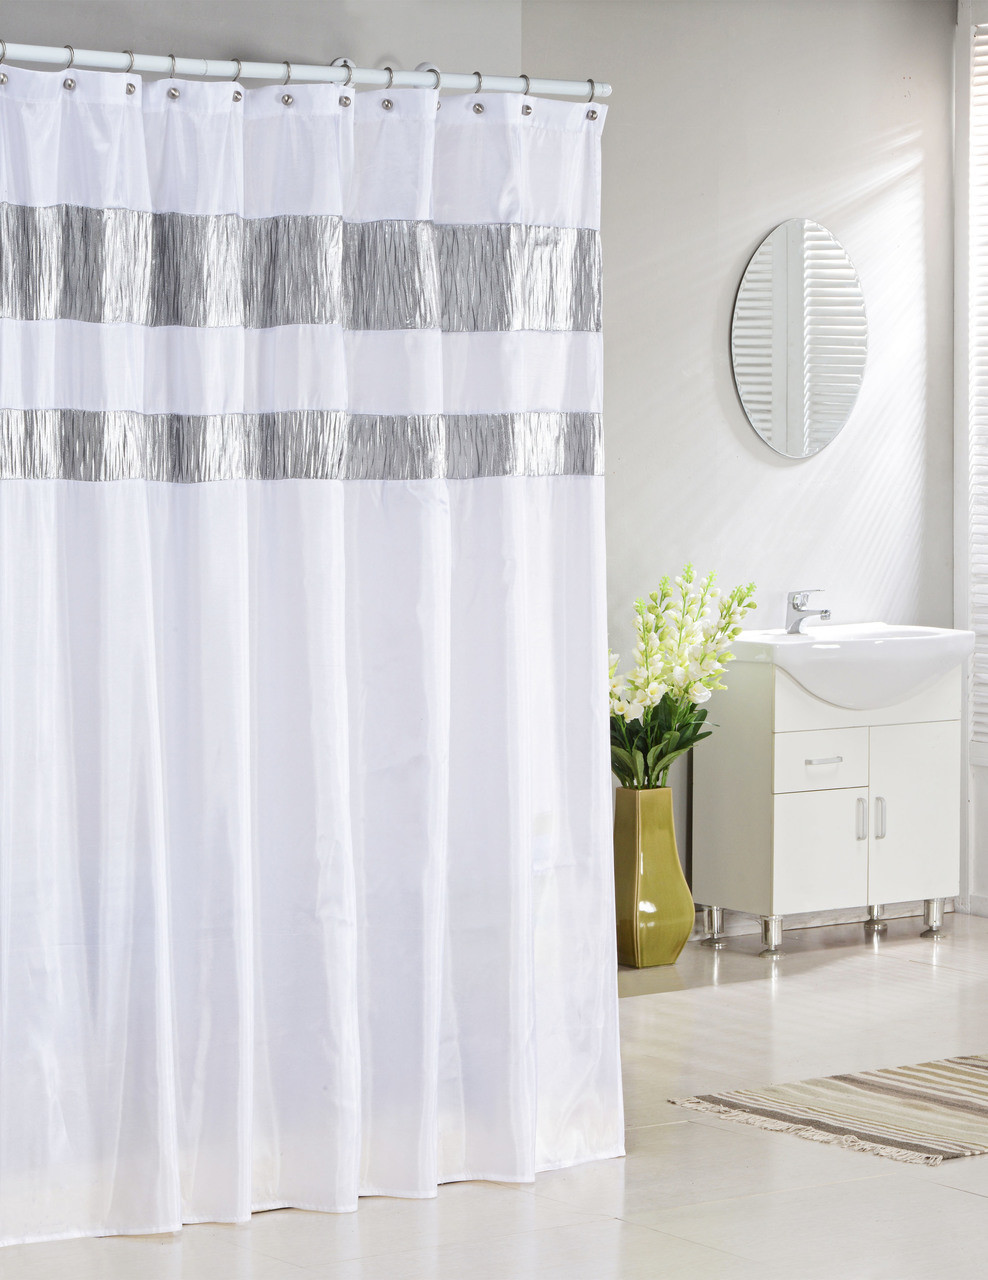 Bathroom And More Collection Pure White Fabric Shower Curtain With Silver Metallic Accent Stripes 72 W X 84 L